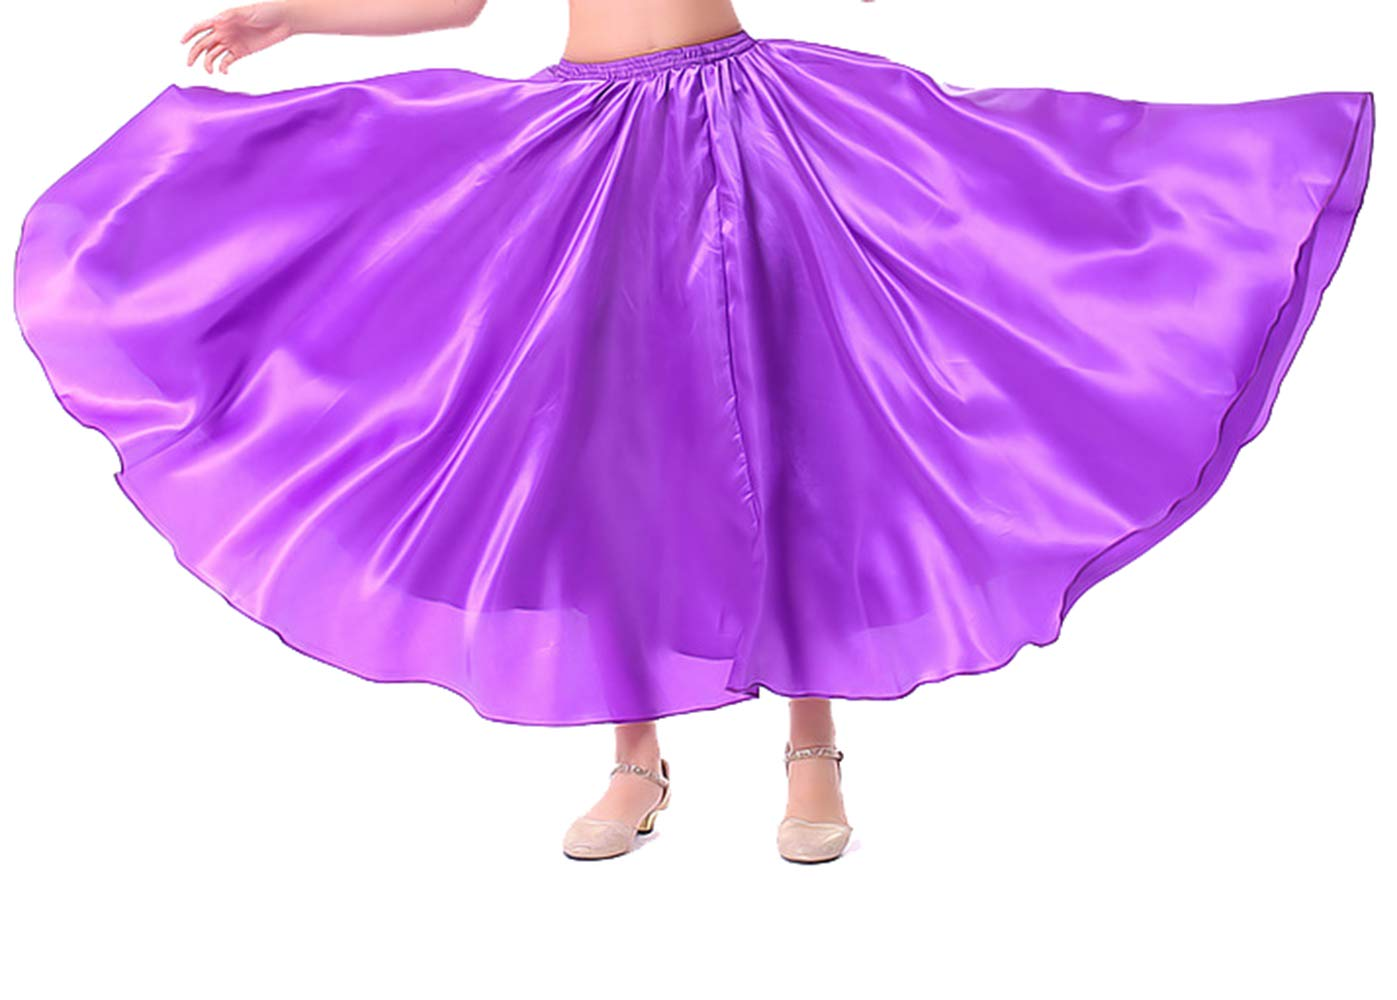 Lauthen.S Kids Gilrs Skirt for Belly Dance/Performance/Halloween Party, Satin Full Circle Tribal Skirt(Purple,S) by Lauthen.S